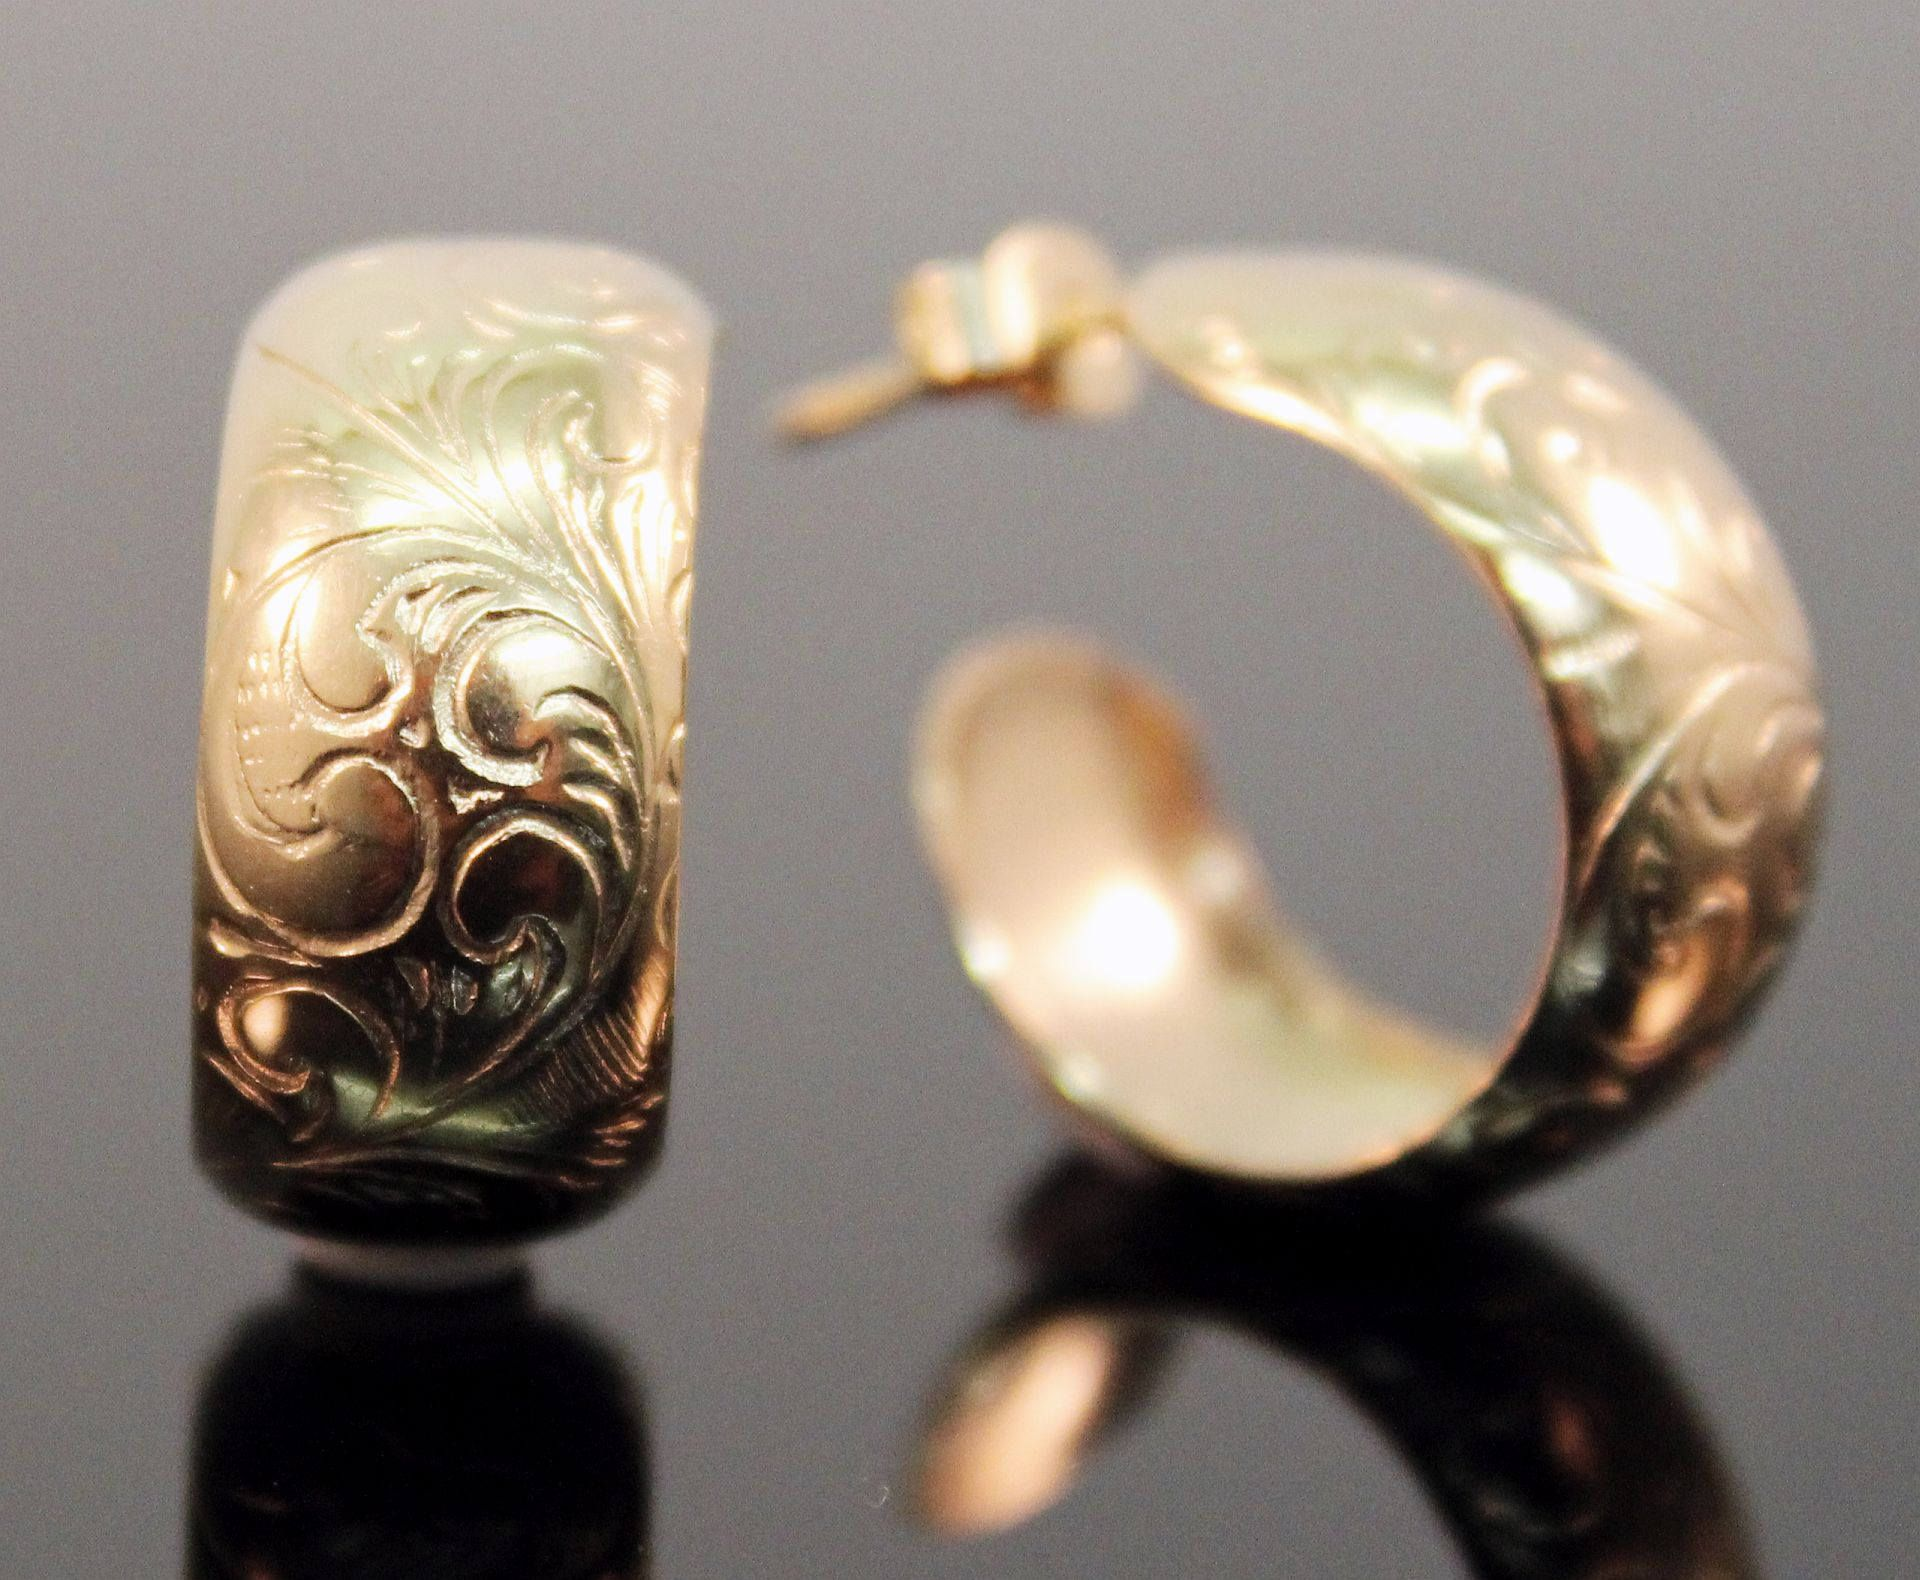 Vintage 70s 9ct Gold Embossed Hoop Earrings Uk English Pierced Jewellery Jewelry